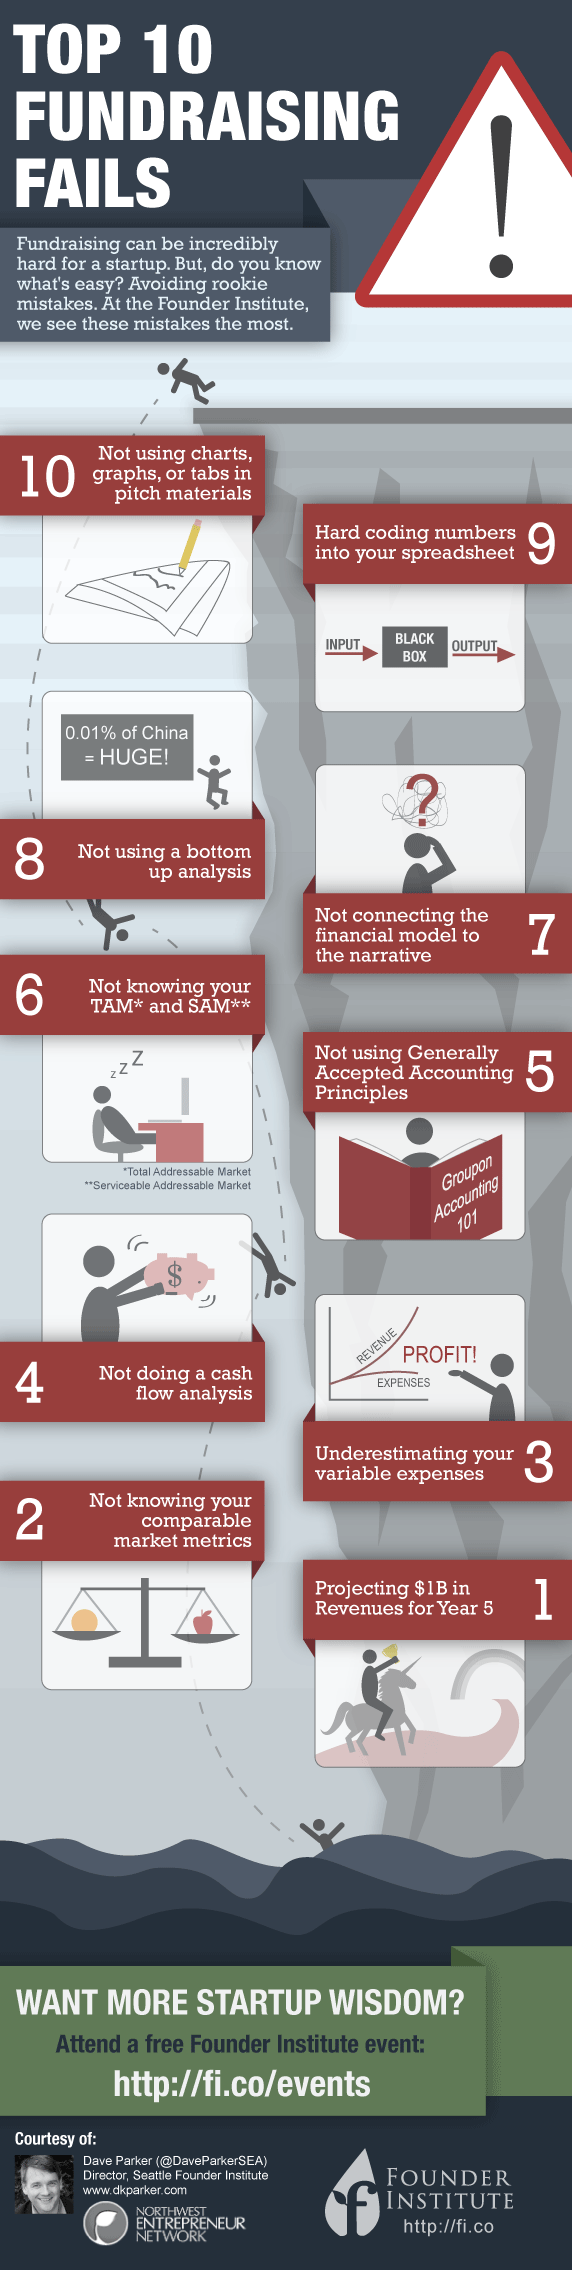 List of Top Fundraising Failures